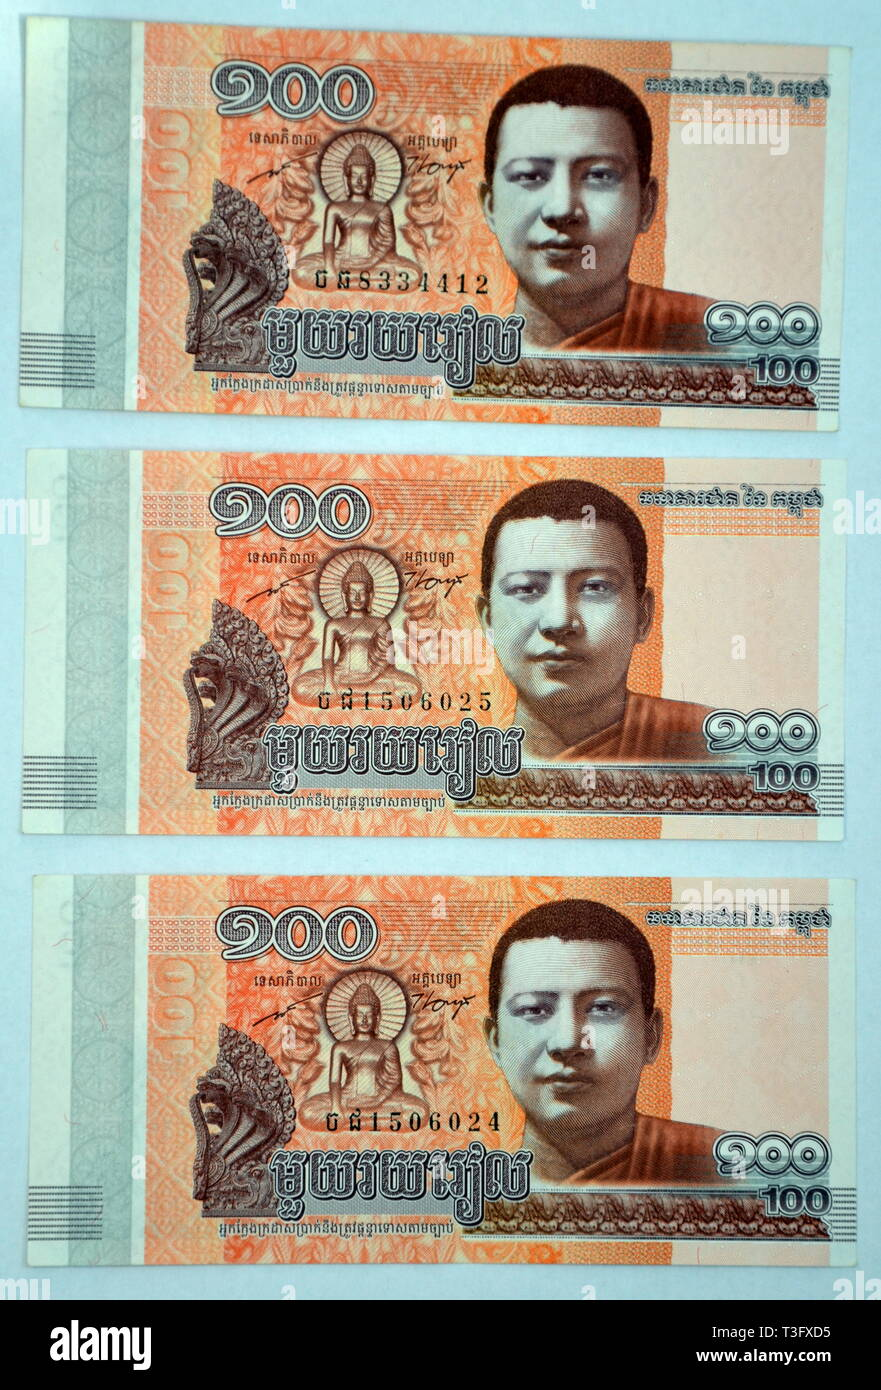 Cambodian 100 Riels Banknotes, Issued January 2015 by the National Bank of Cambodia, Showing King Father as a Young Monk - Stock Image